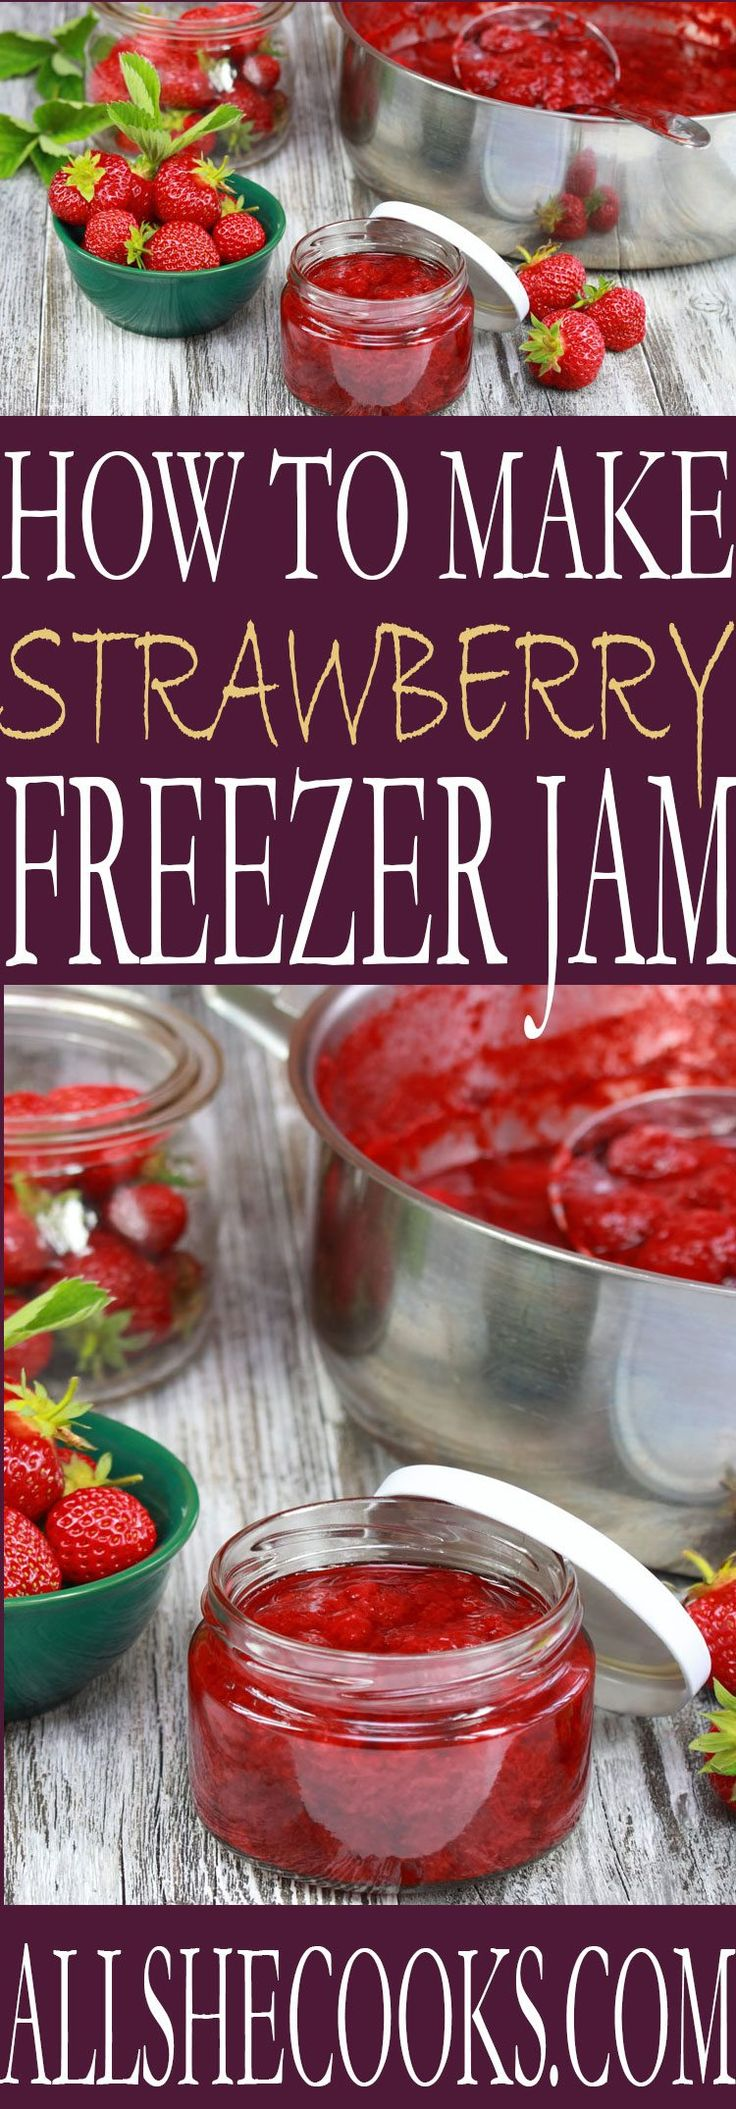 Learn how to make freezer strawberry jam at home. This is an easy recipe flavorful sweet strawberry jam recipe.